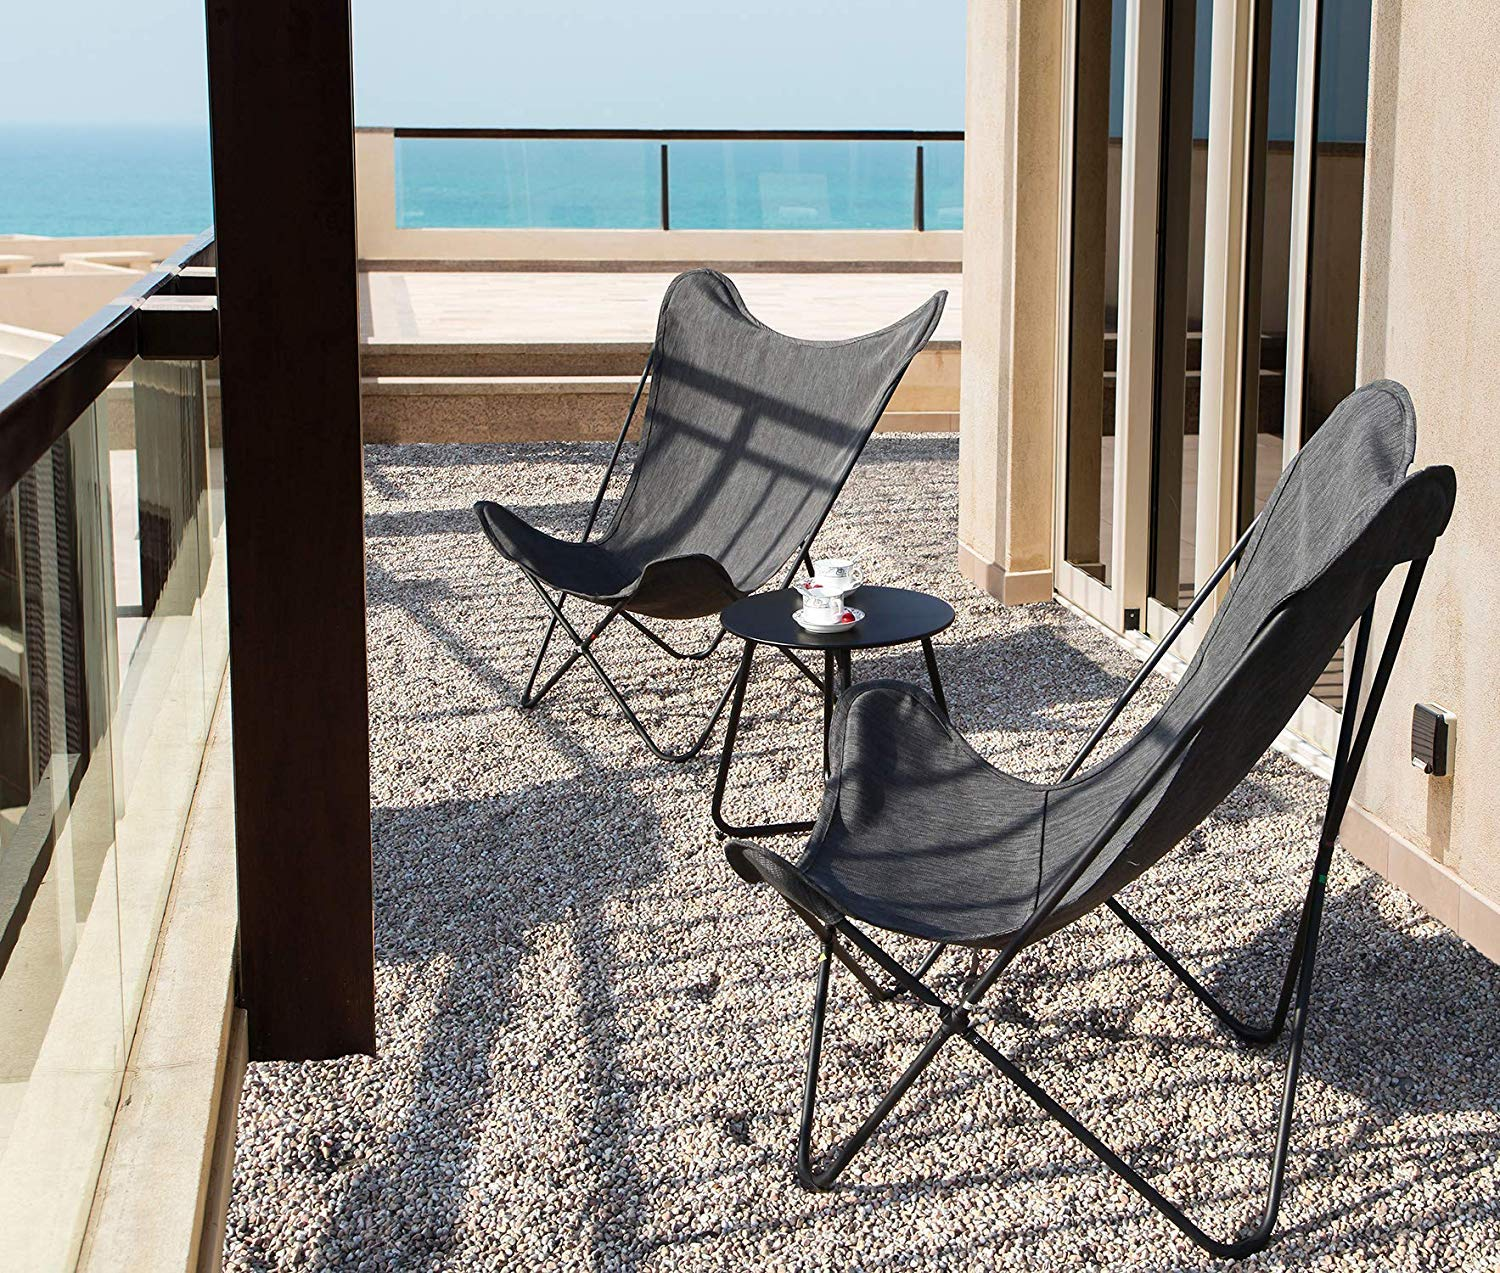 Grand Patio Indoor & Outdoor Lounge Chair, Butterfly Sling Chairs with Metal Frame, Patio Recliner for Pool, Beach and Yard. Gray by Grand patio